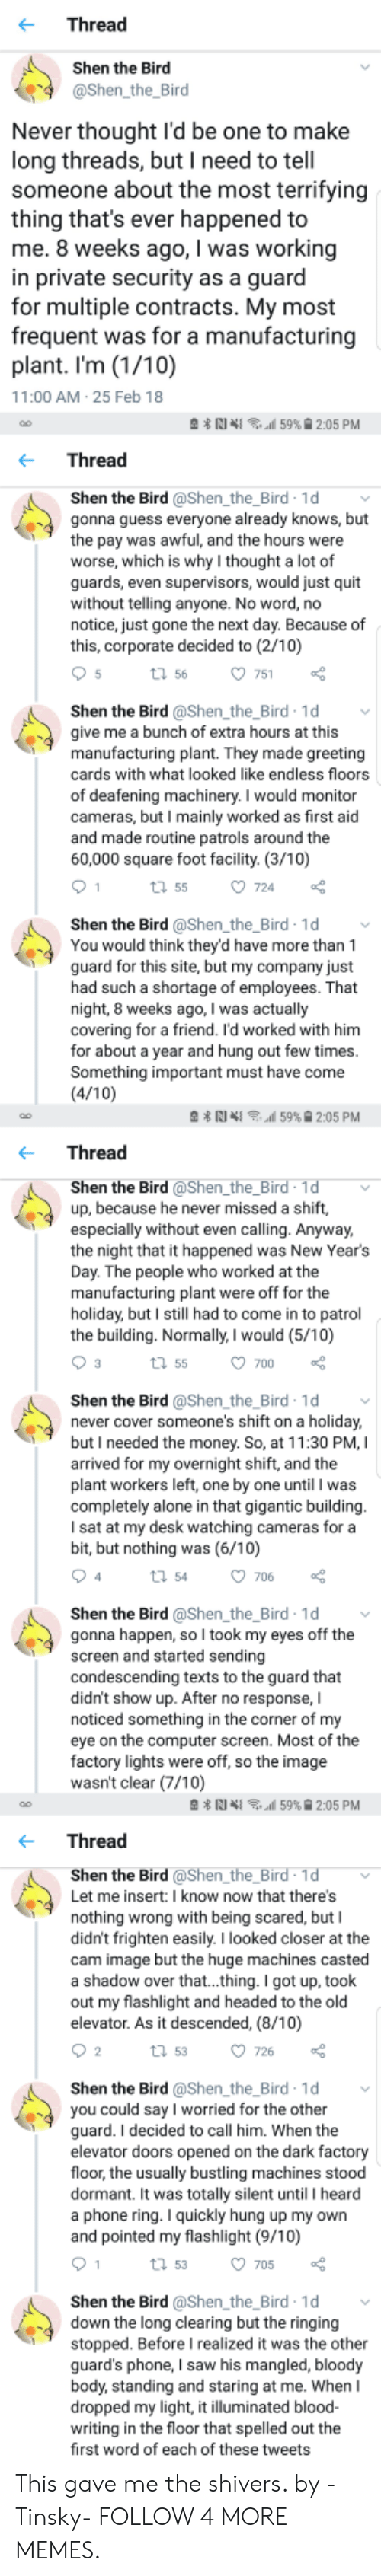 new years day: Thread  Shen the Bird  @Shen the_Bird  Never thought l'd be one to make  long threads, but I need to tell  someone about the most terrifying  thing that's ever happened to  me. 8 weeks ago, I was working  in private security as a guard  for multiple contracts. My most  frequent was for a manufacturing  plant. I'm (1/10)  11:00 AM 25 Feb 18  N 59% 2:05 PM  Thread  Shen the Bird @Shen_the_Bird 1d  gonna guess everyone already knows, but  the pay was awful, and the hours were  worse, which is why I thought a lot of  guards, even supervisors, would just quit  without telling anyone. No word, no  notice, just gone the next day. Because of  this, corporate decided to (2/10)  5  t 56  751  Shen the Bird @Shen_the_Bird 1d  give me a bunch of extra hours at this  manufacturing plant. They made greeting  cards with what looked like endless floors  of deafening machinery. I would monitor  cameras, but I mainly worked as first aid  and made routine patrols around the  60,000 square foot facility. (3/10)  1  724  t 55  Shen the Bird @Shen_the_Bird 1d  You would think they'd have more than 1  guard for this site, but my company just  had such a shortage of employees. That  night, 8 weeks ago, I was actually  covering for a friend. I'd worked with him  for about a year and hung out few times.  Something important must have come  (4/10)  59% 9 2:05 PM  Thread  Shen the Bird @Shen_the_Bird 1d  up, because he never missed a shift,  especially without even calling. Anyway,  the night that it happened was New Year's  Day. The people who worked at the  manufacturing plant were off for the  holiday, but I still had to come in to patrol  the building. Normally, I would (5/10)  3  t 55  700  Shen the Bird @Shen_the_Bird 1d  never cover someone's shift on a holiday,  but I needed the money. So, at 11:30 PM, I  arrived for my overnight shift, and the  plant workers left, one by one until I was  completely alone in that gigantic building.  I sat at my desk watching cameras for 